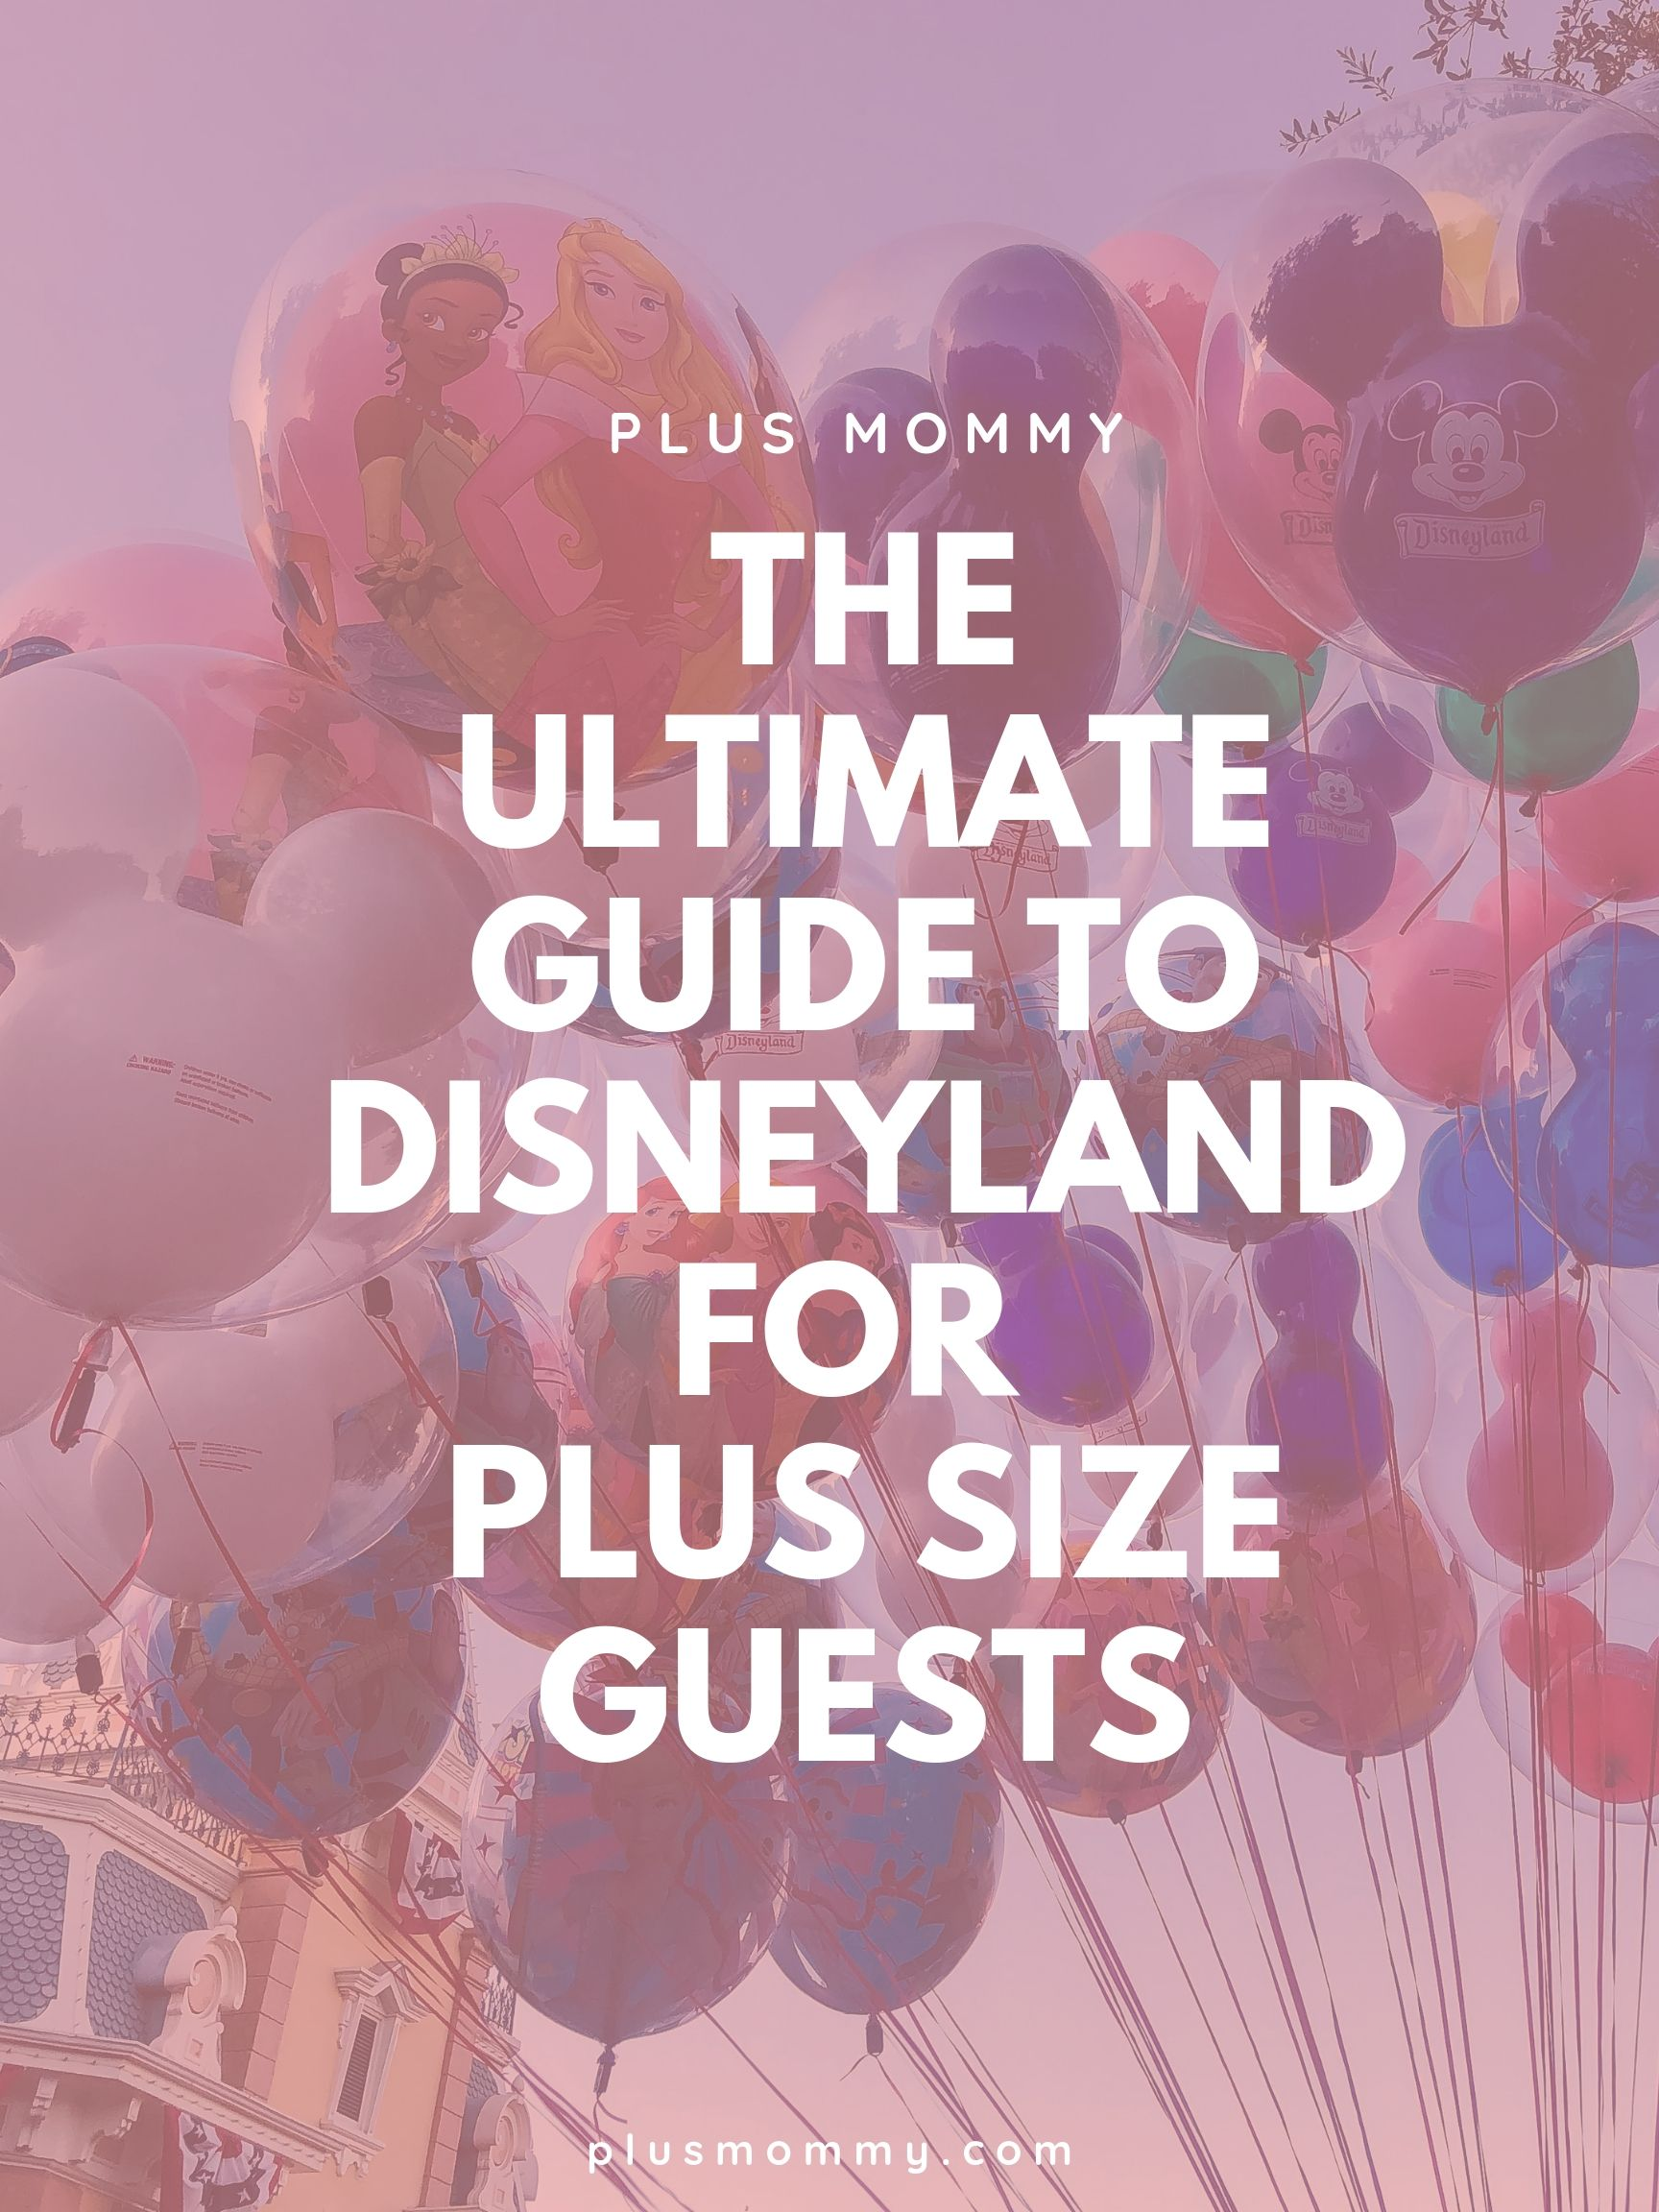 Disneyland For Plus Size Guests Guide